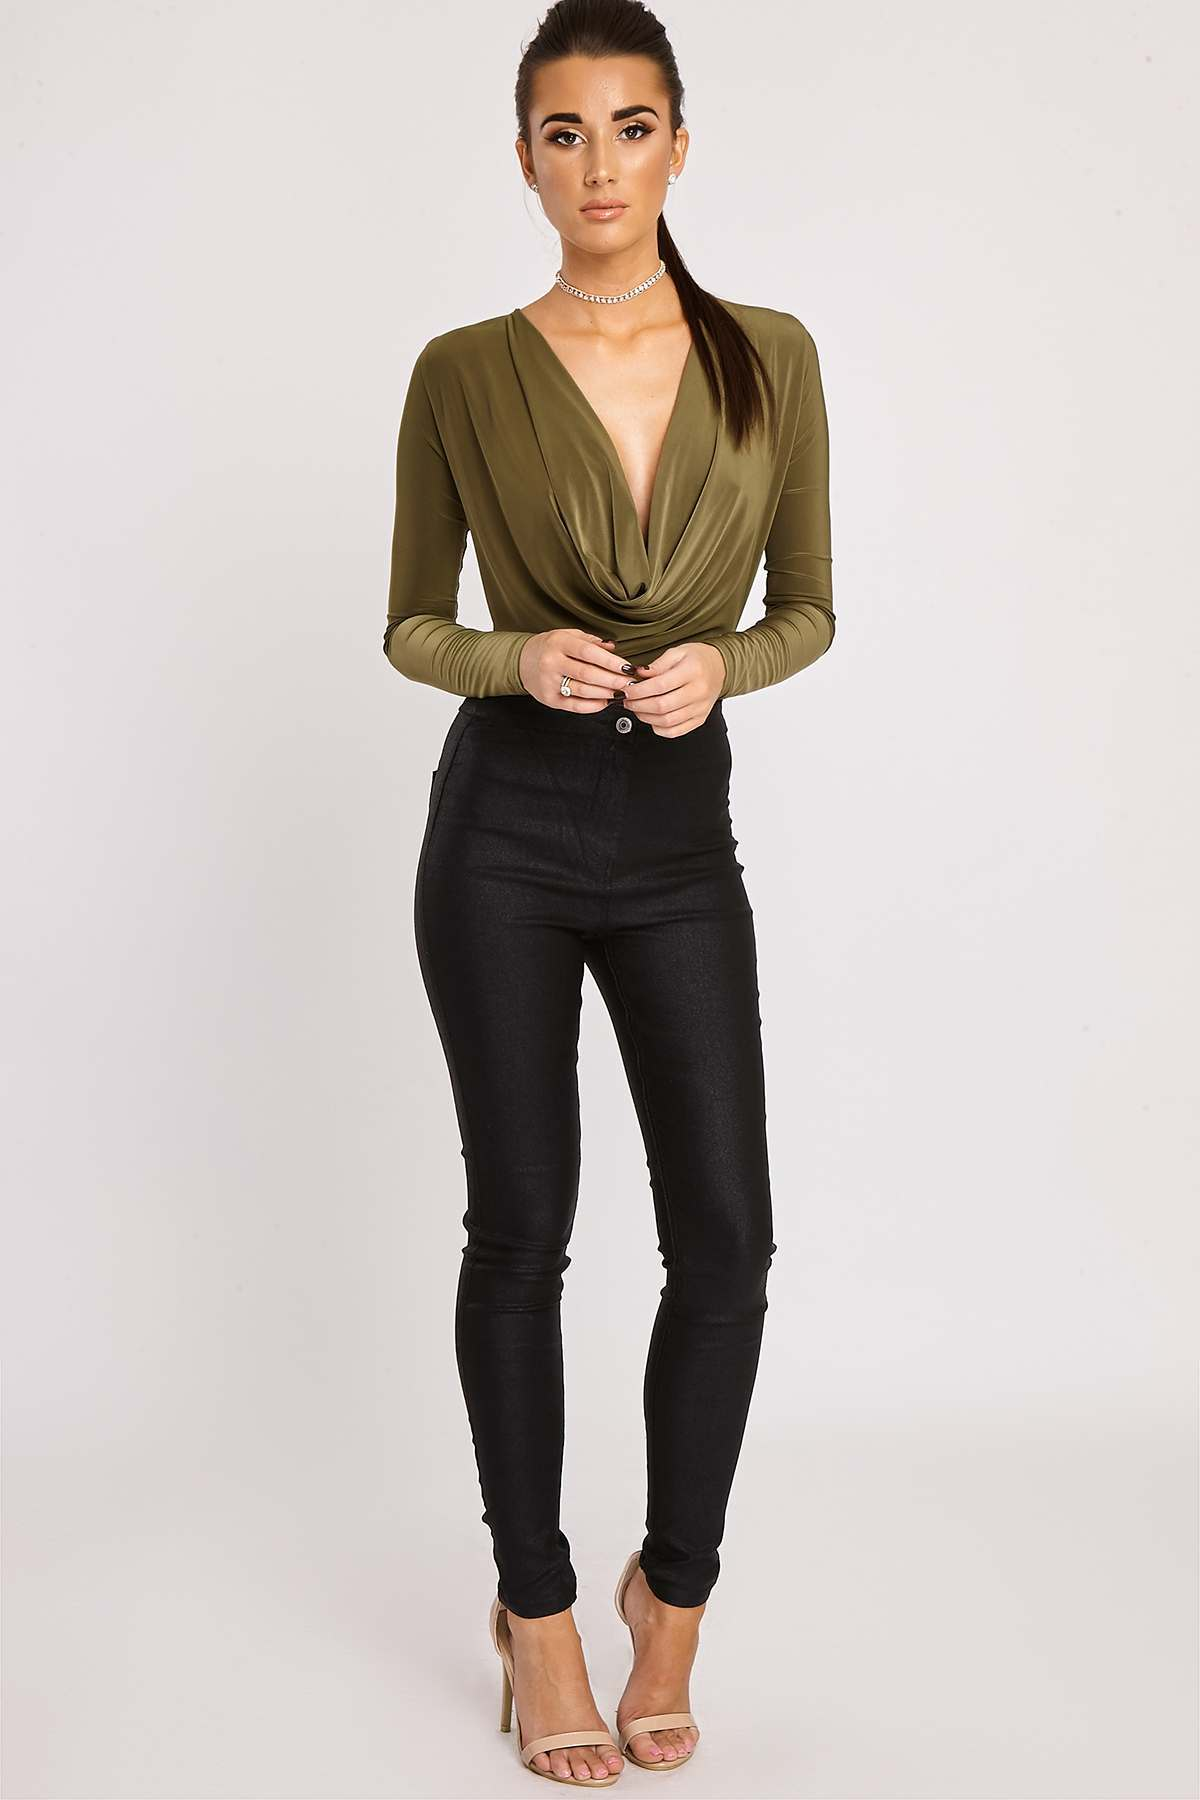 Black Jeans  Alexia Black Shimmer Coated High Waisted Skinny Jeans